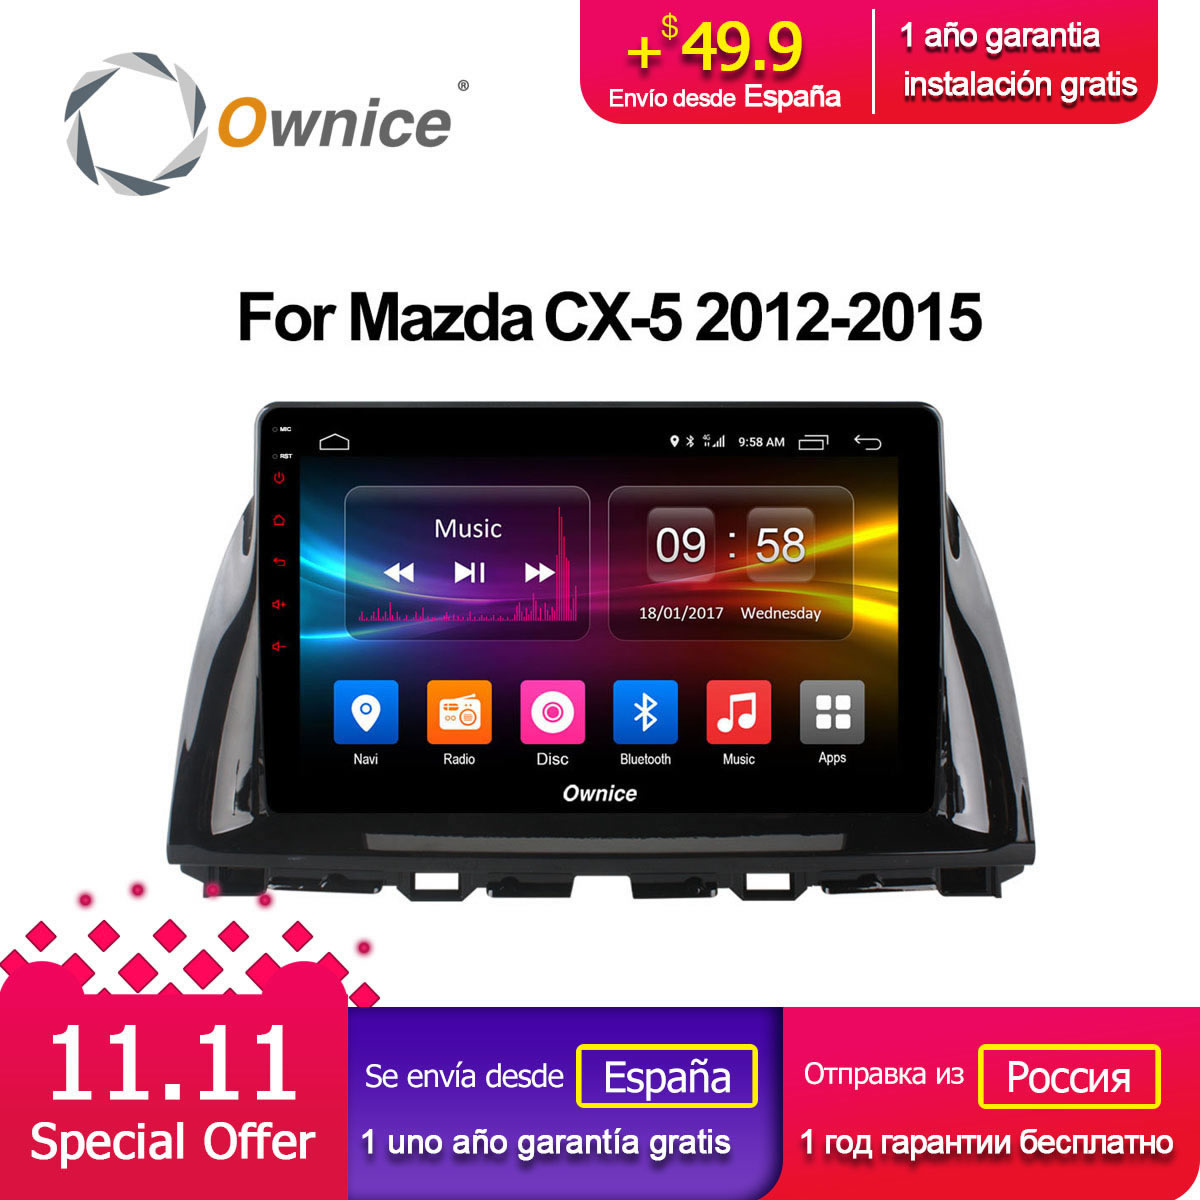 Ownice C500+ G10 10.1 Octa Core Android 8.1 Car Radio GPS DVD for Mazda CX-5 2012 2013 2014 2015 Support 4G LTE Network DAB+ ownice c500 g10 octa core 2gb ram 32g rom android car dvd 8 1 gps for mazda 6 summit 2009 2015 wifi 4g lte radio dab dvr